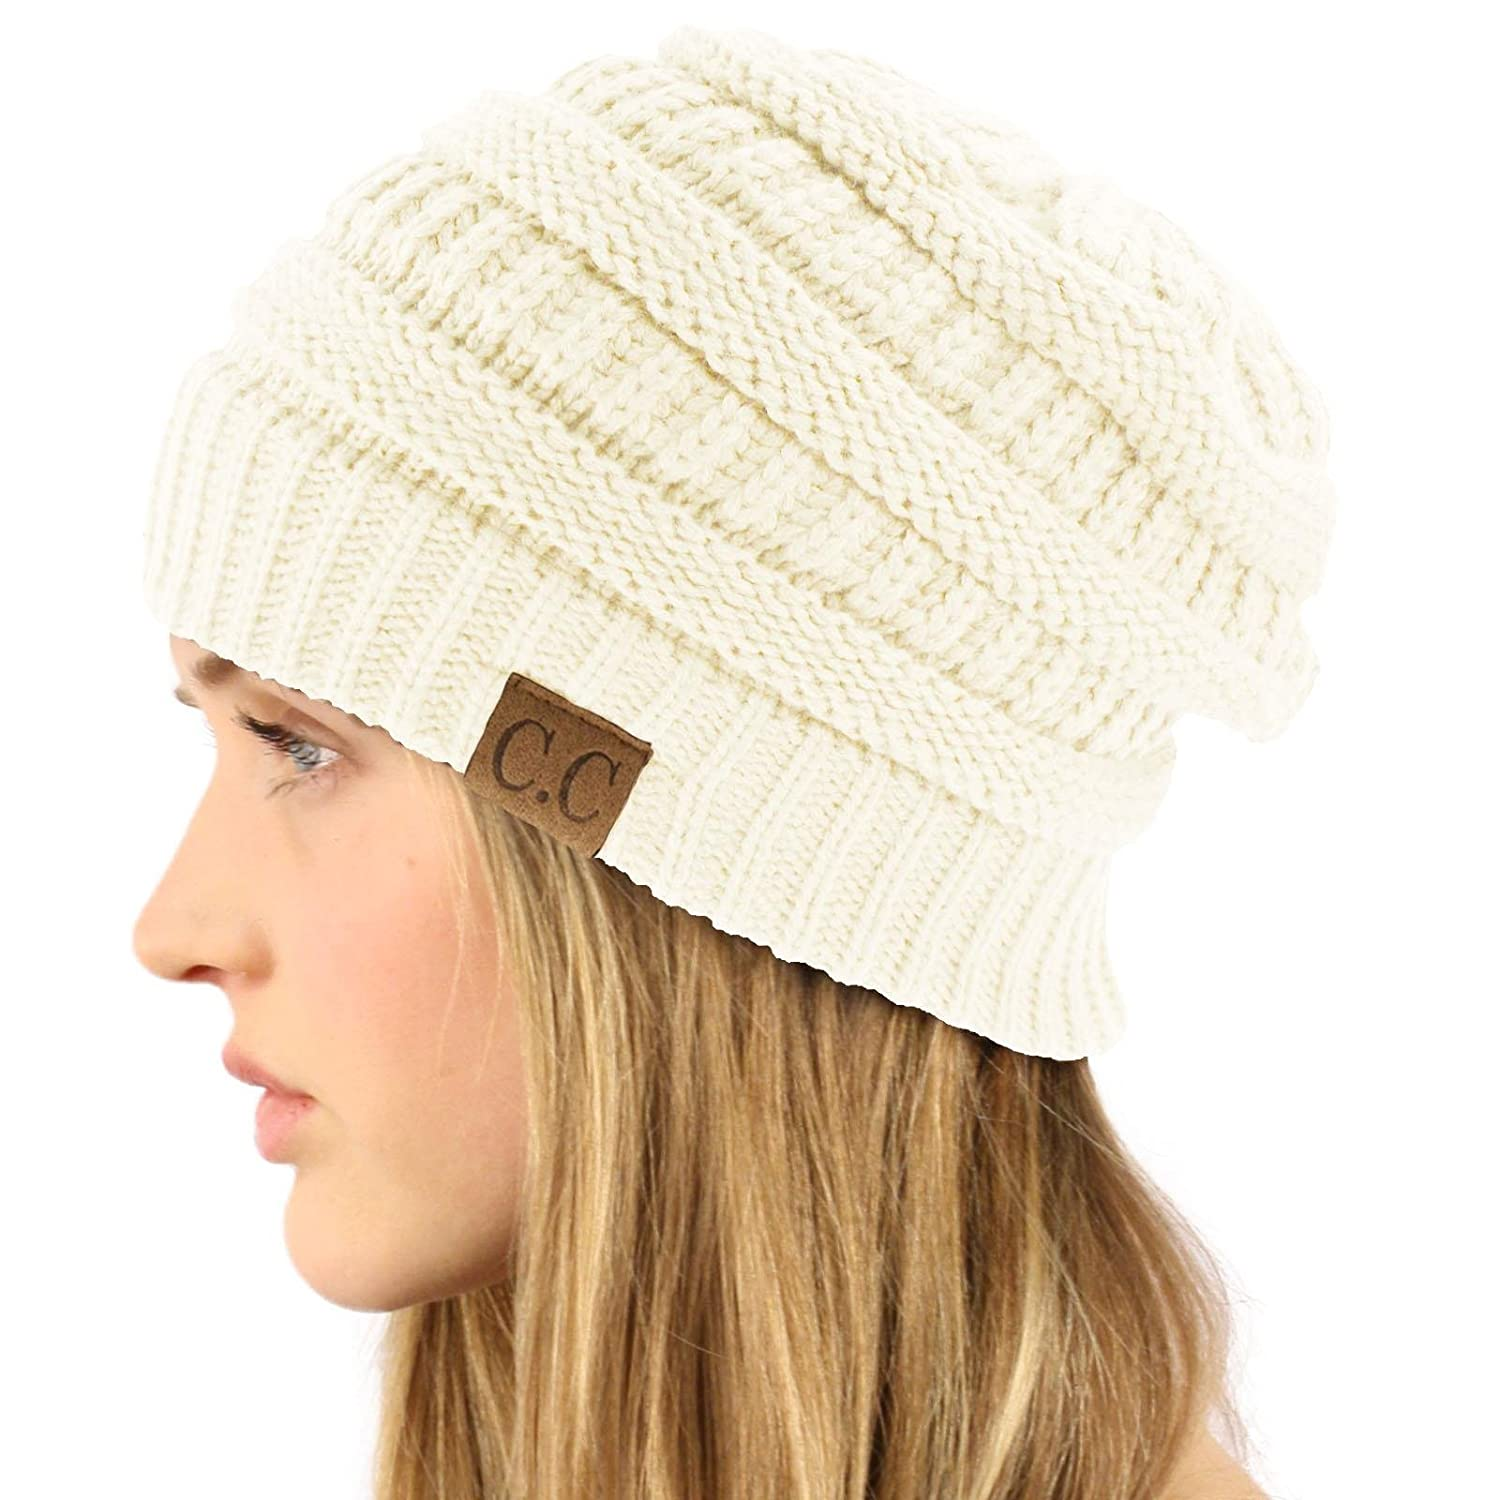 1b61ab2e2 Unisex Winter Chunky Soft Stretch Cable Knit Slouch Beanie Skully Hat Cap  Ivory,One Size